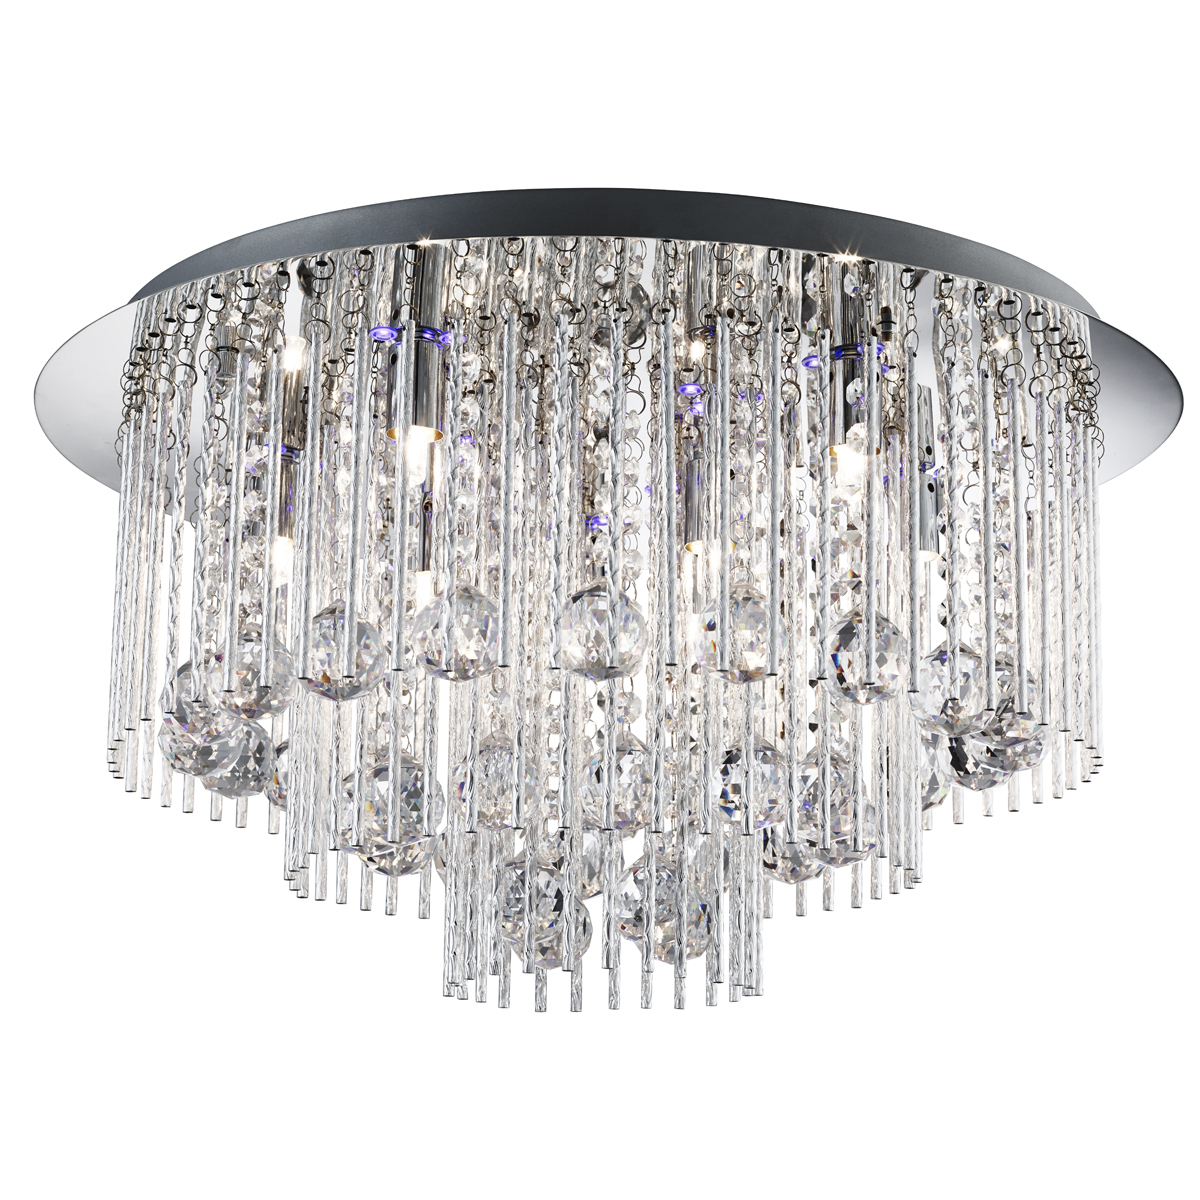 Home – Astral Lighting Ltd Pertaining To Recent Hatfield 3 Light Novelty Chandeliers (View 24 of 25)